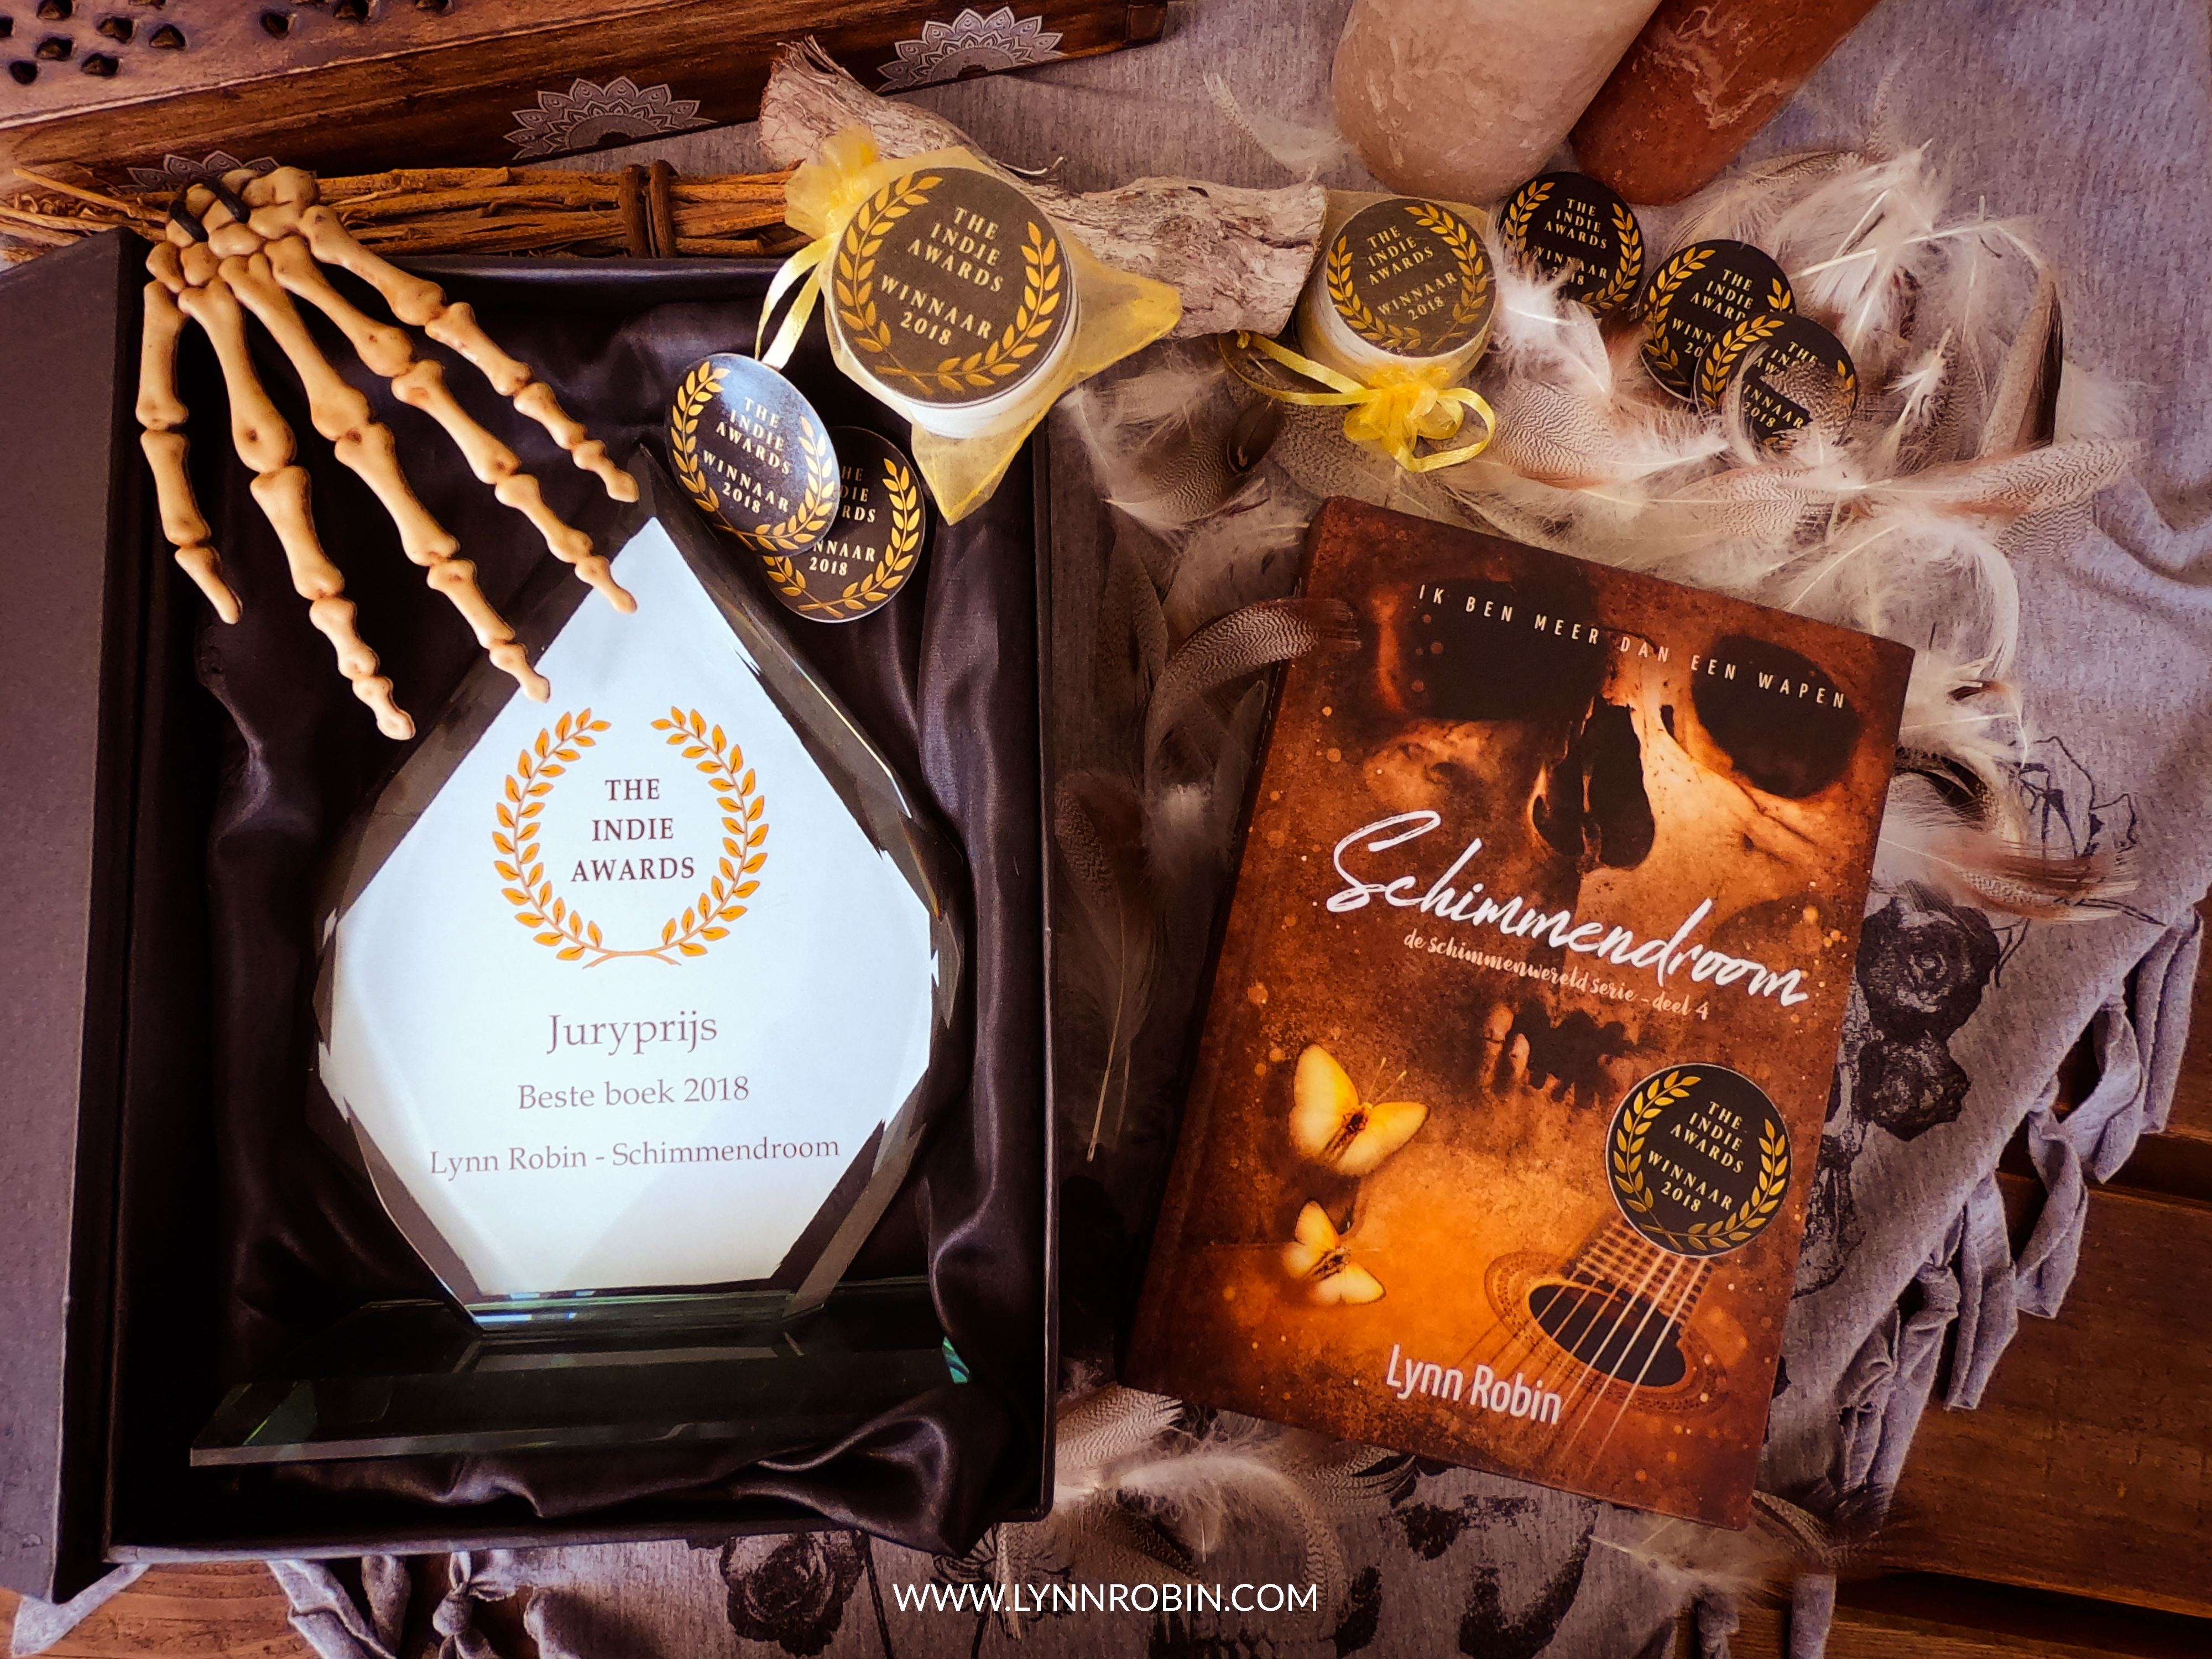 The Indie Awards: Mijn beste boek 2018 award!